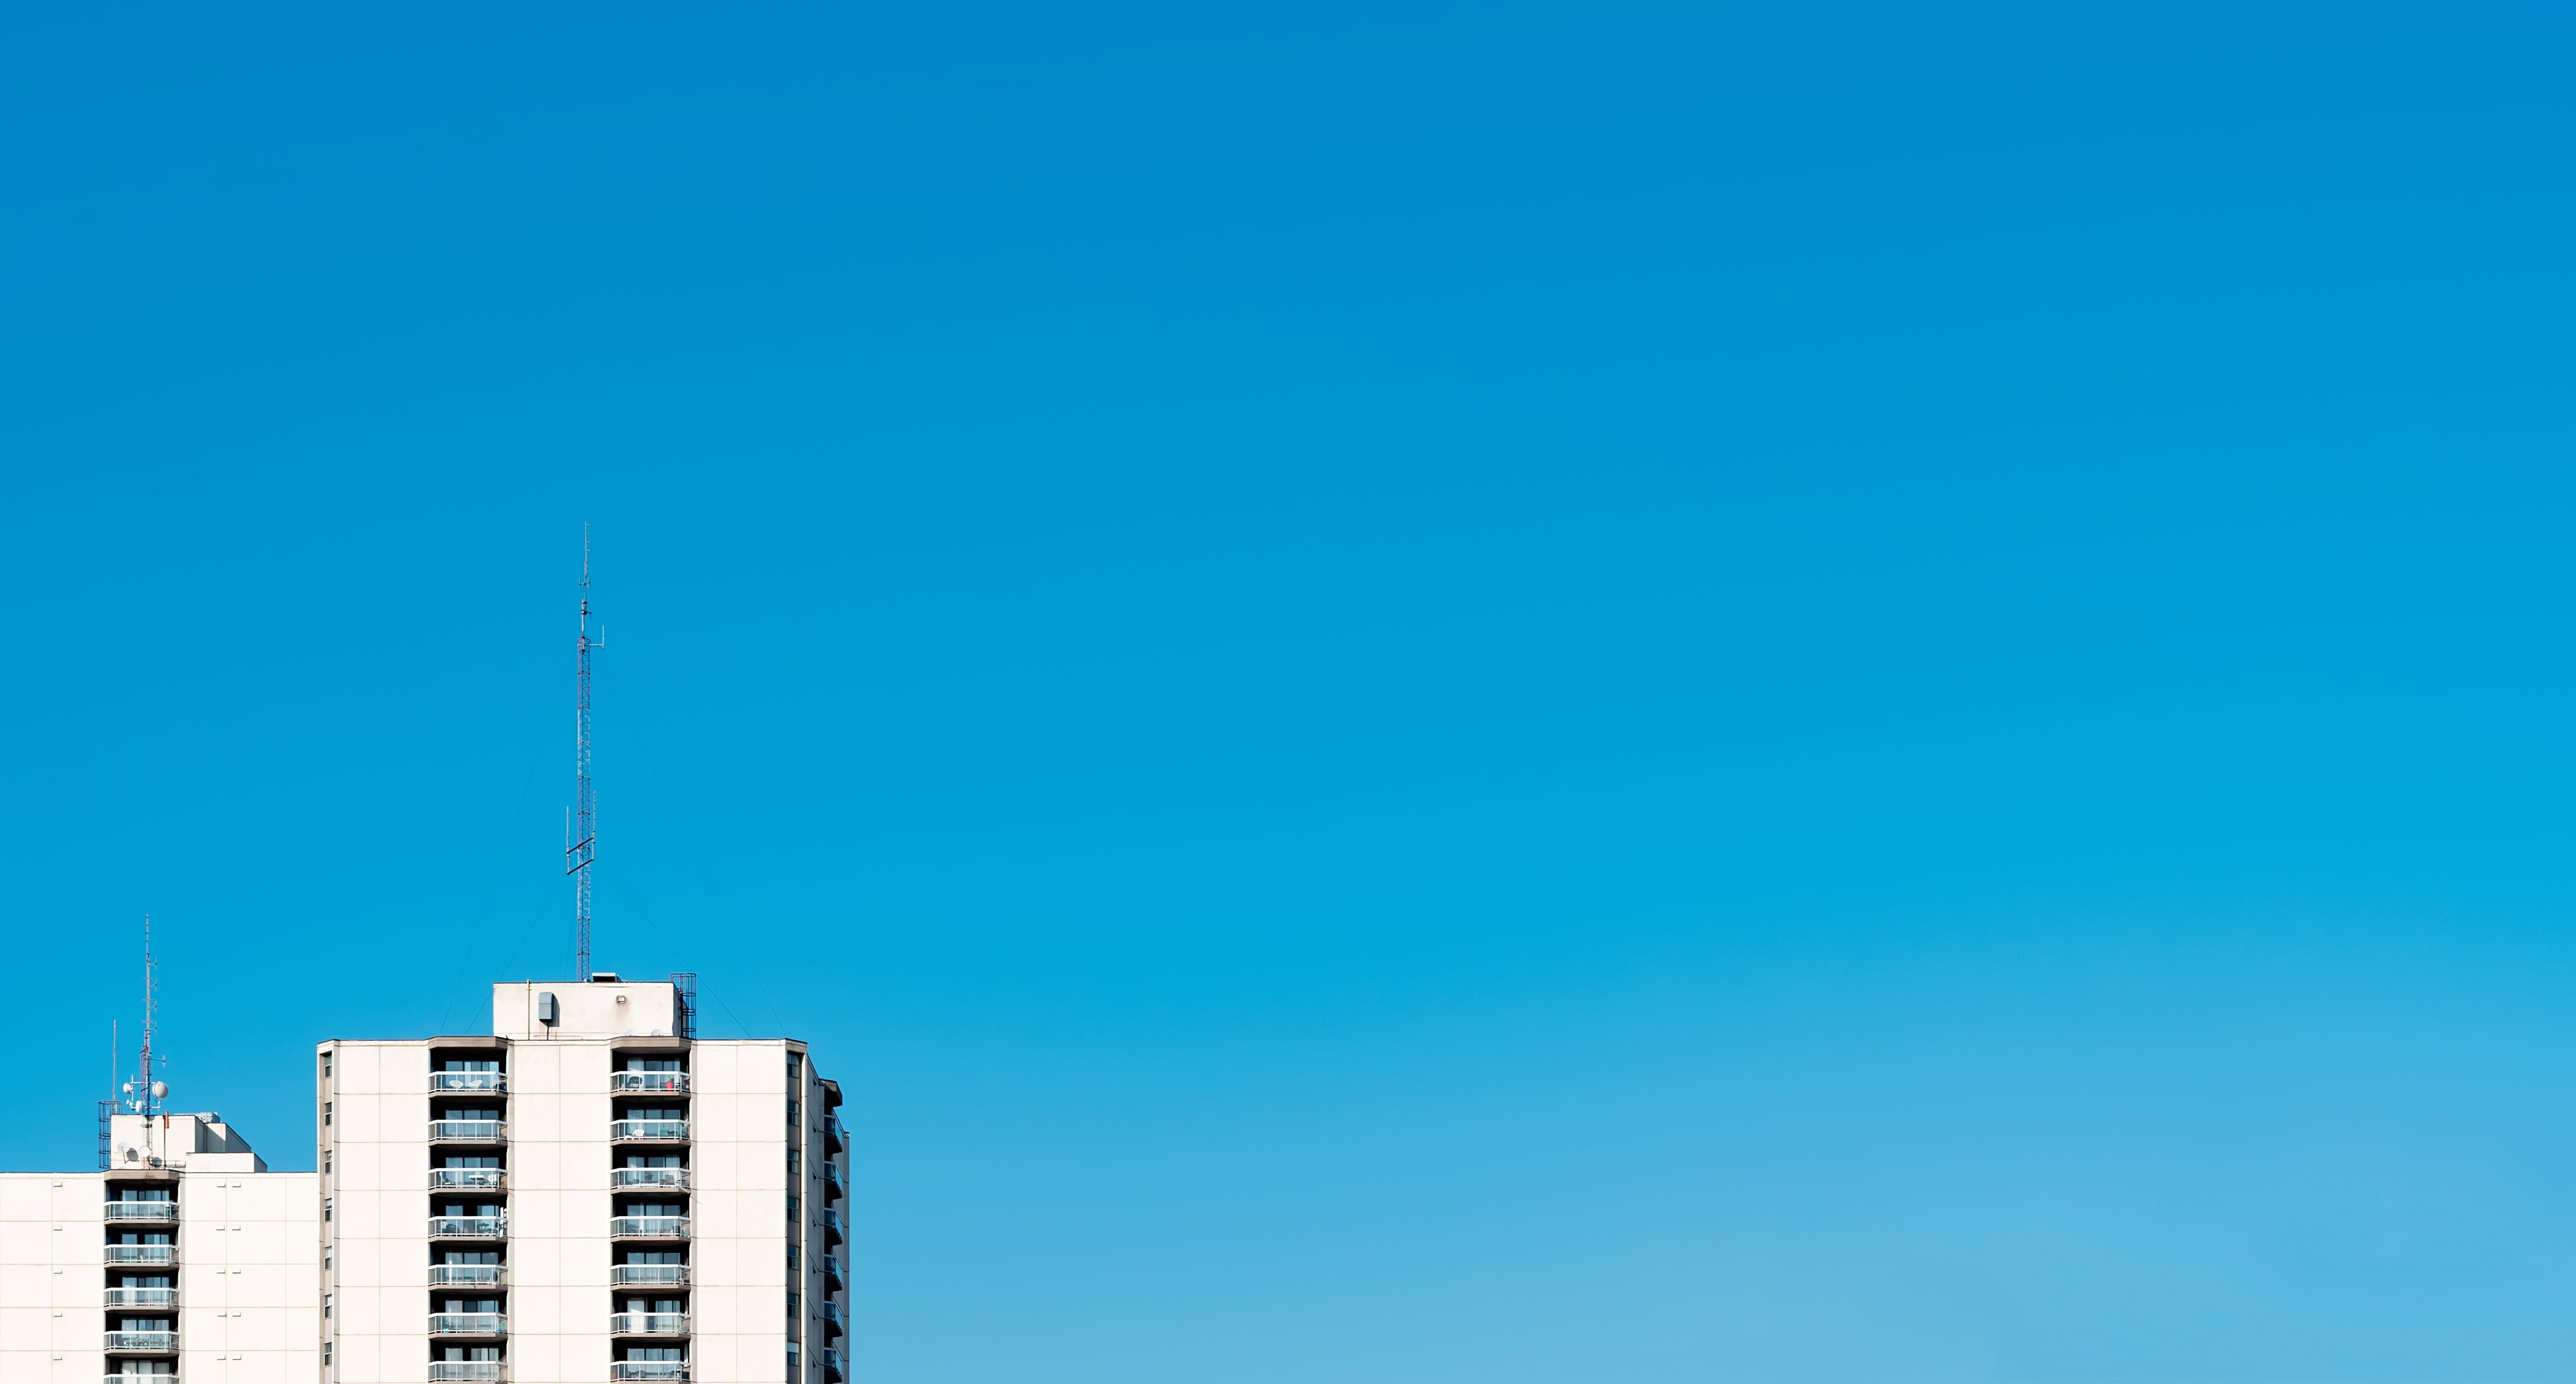 of architecture, × mini, blue sky, building